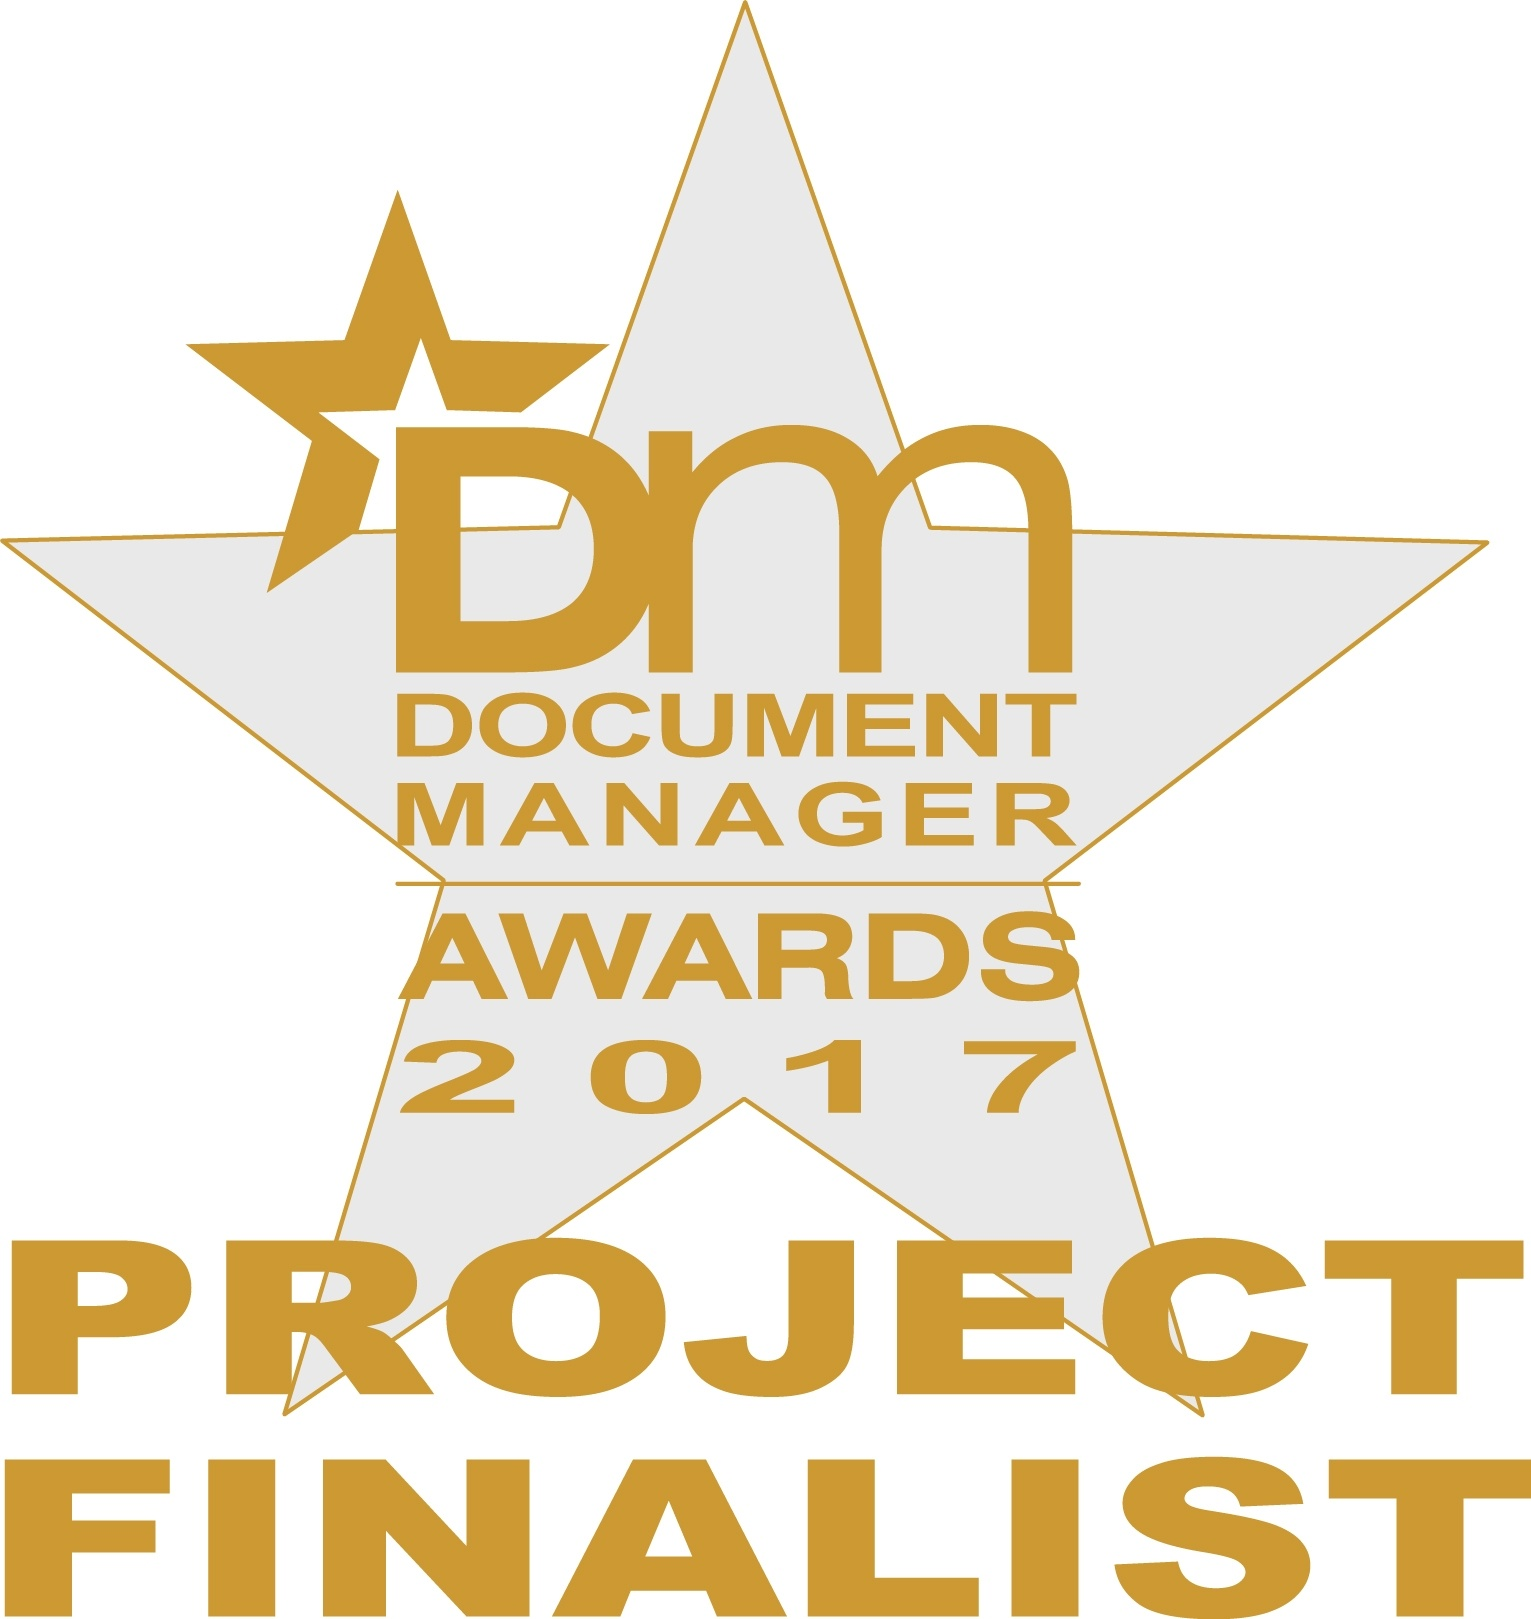 Moonoia Finalist for Document Manager Awards 2017